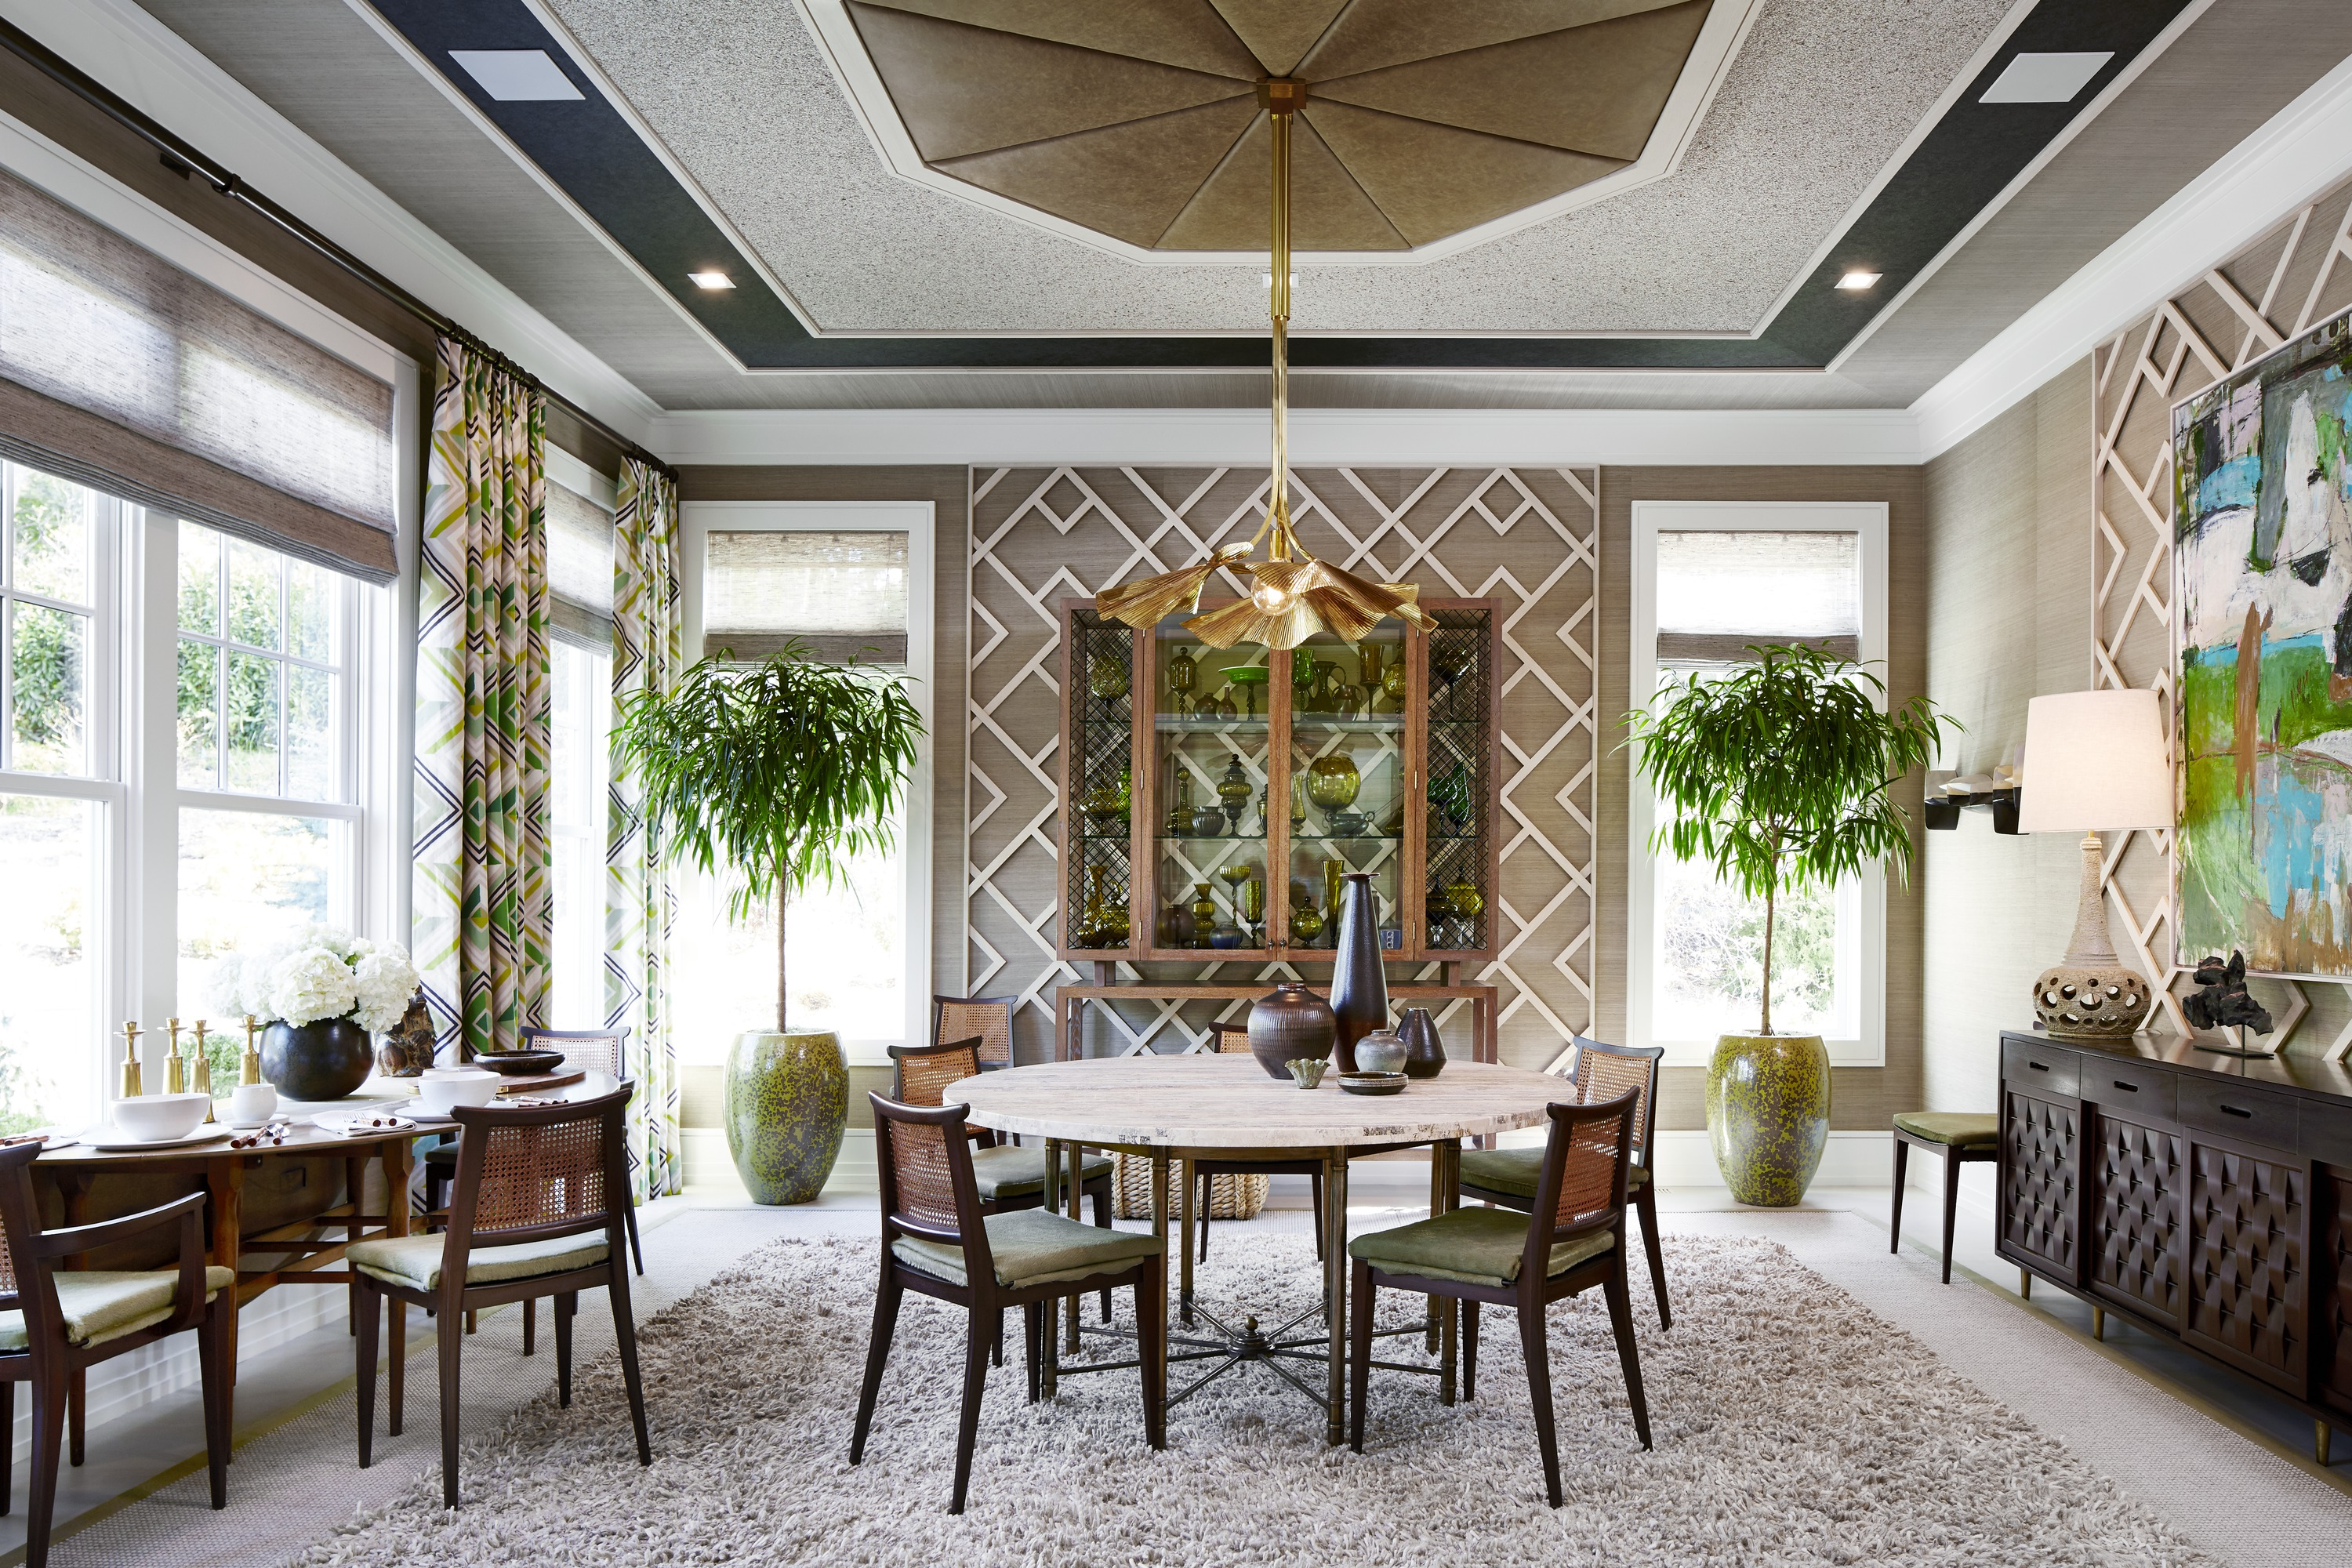 The formal dining room takes a contemporary approach to classic elements, honoring traditional materials like leather and caning, but applying them in fresh ways.